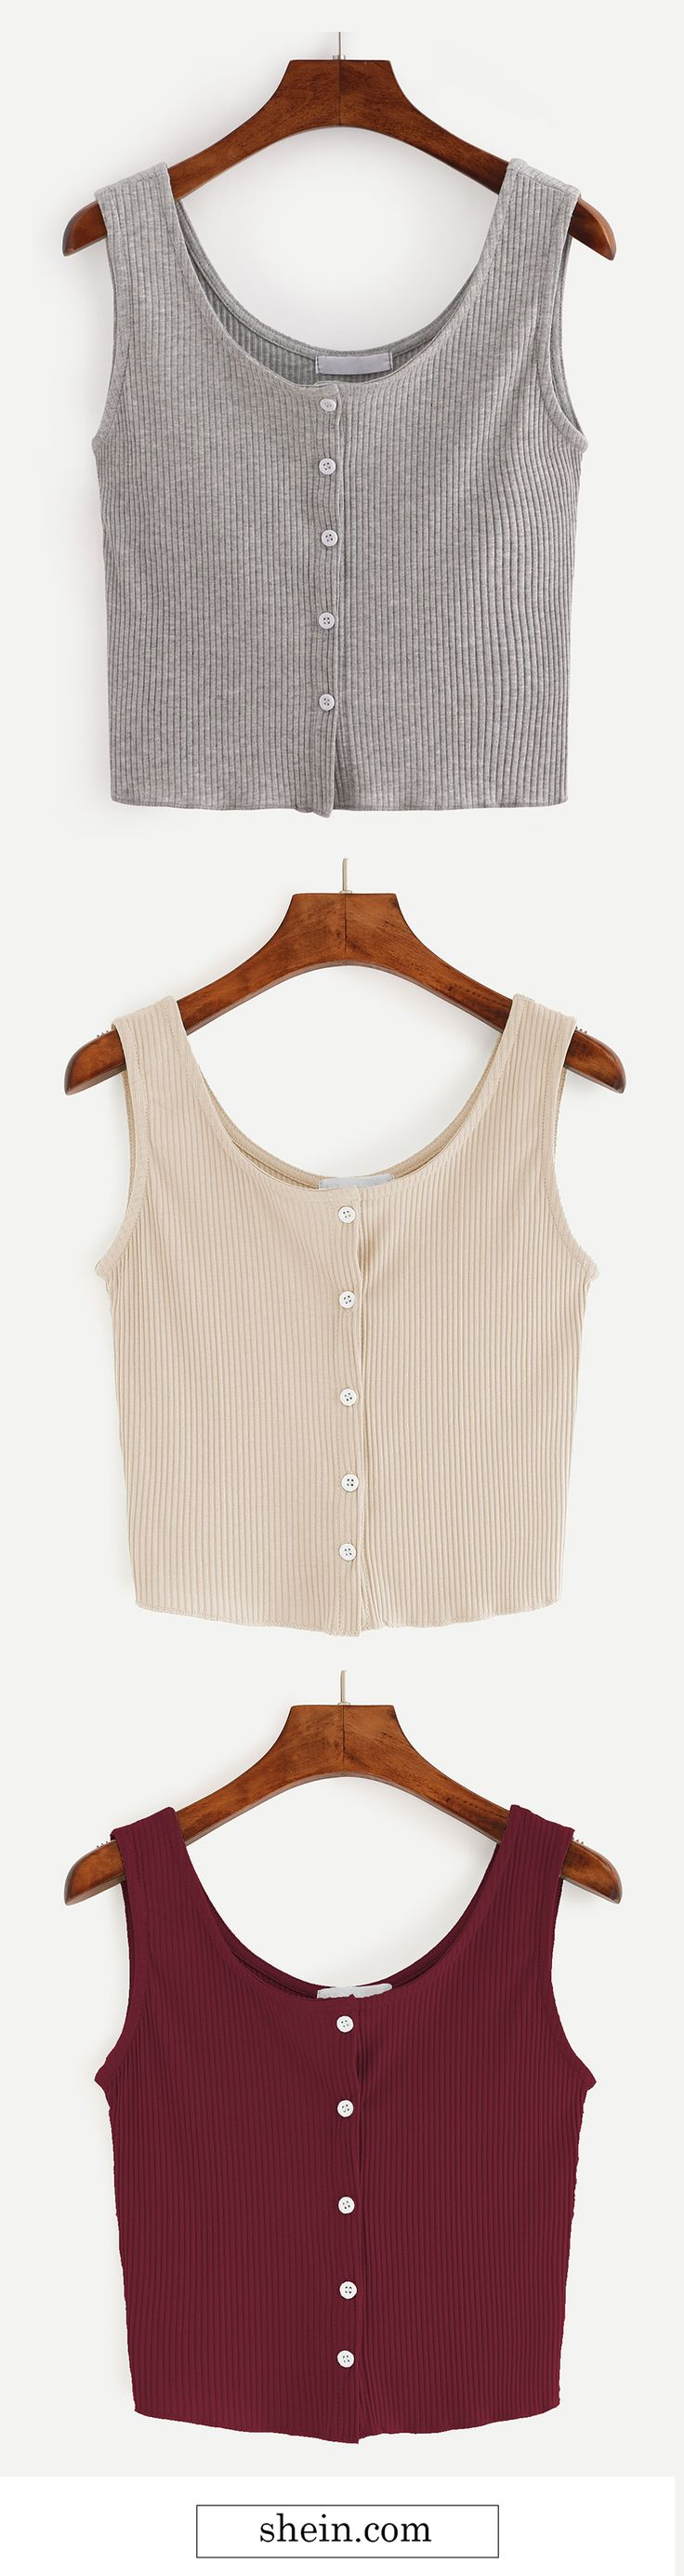 Buttoned front ribbed knit crop tank top.